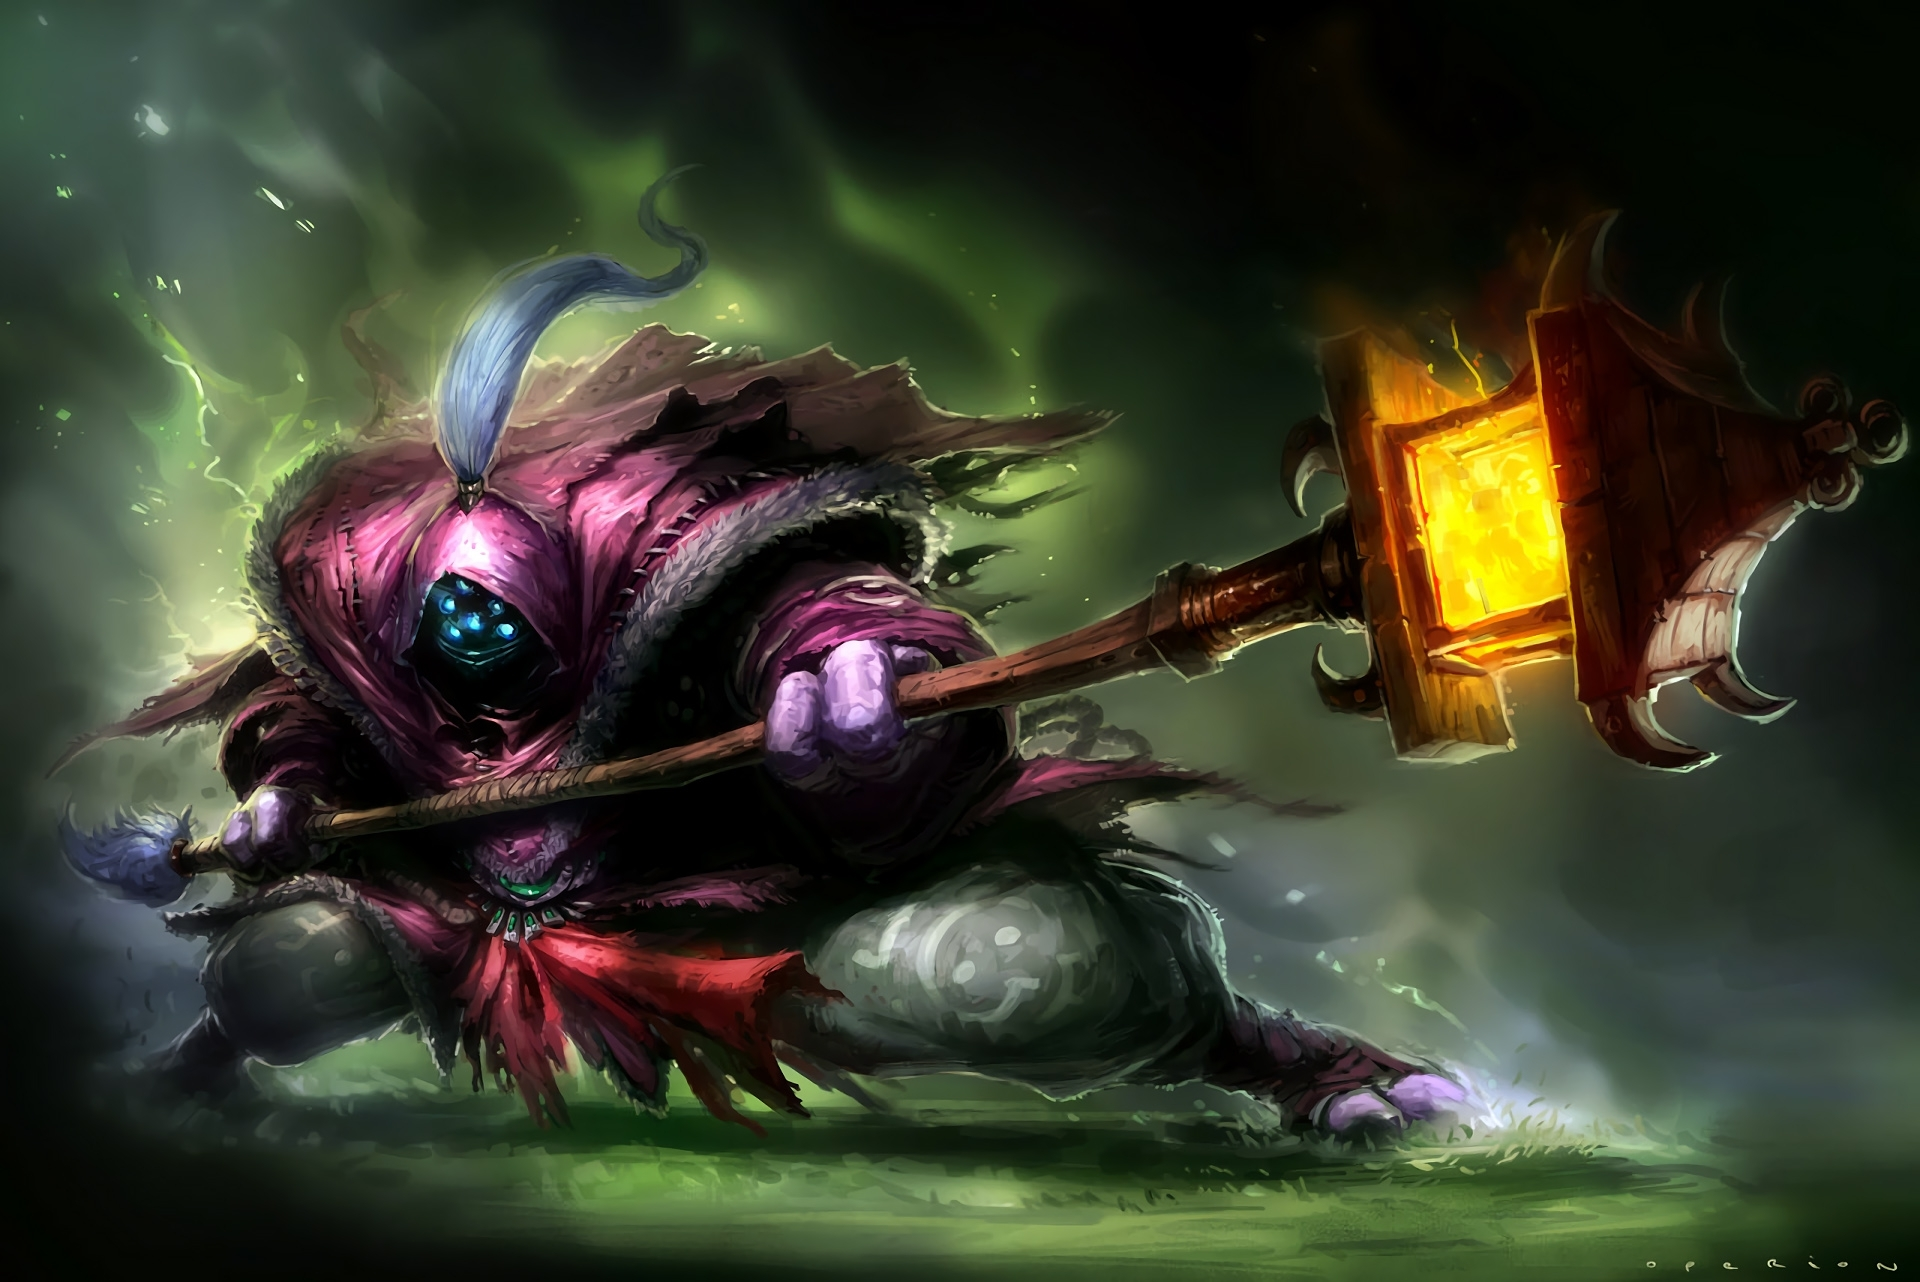 jax - lol wallpapers | hd wallpapers & artworks for league of legends